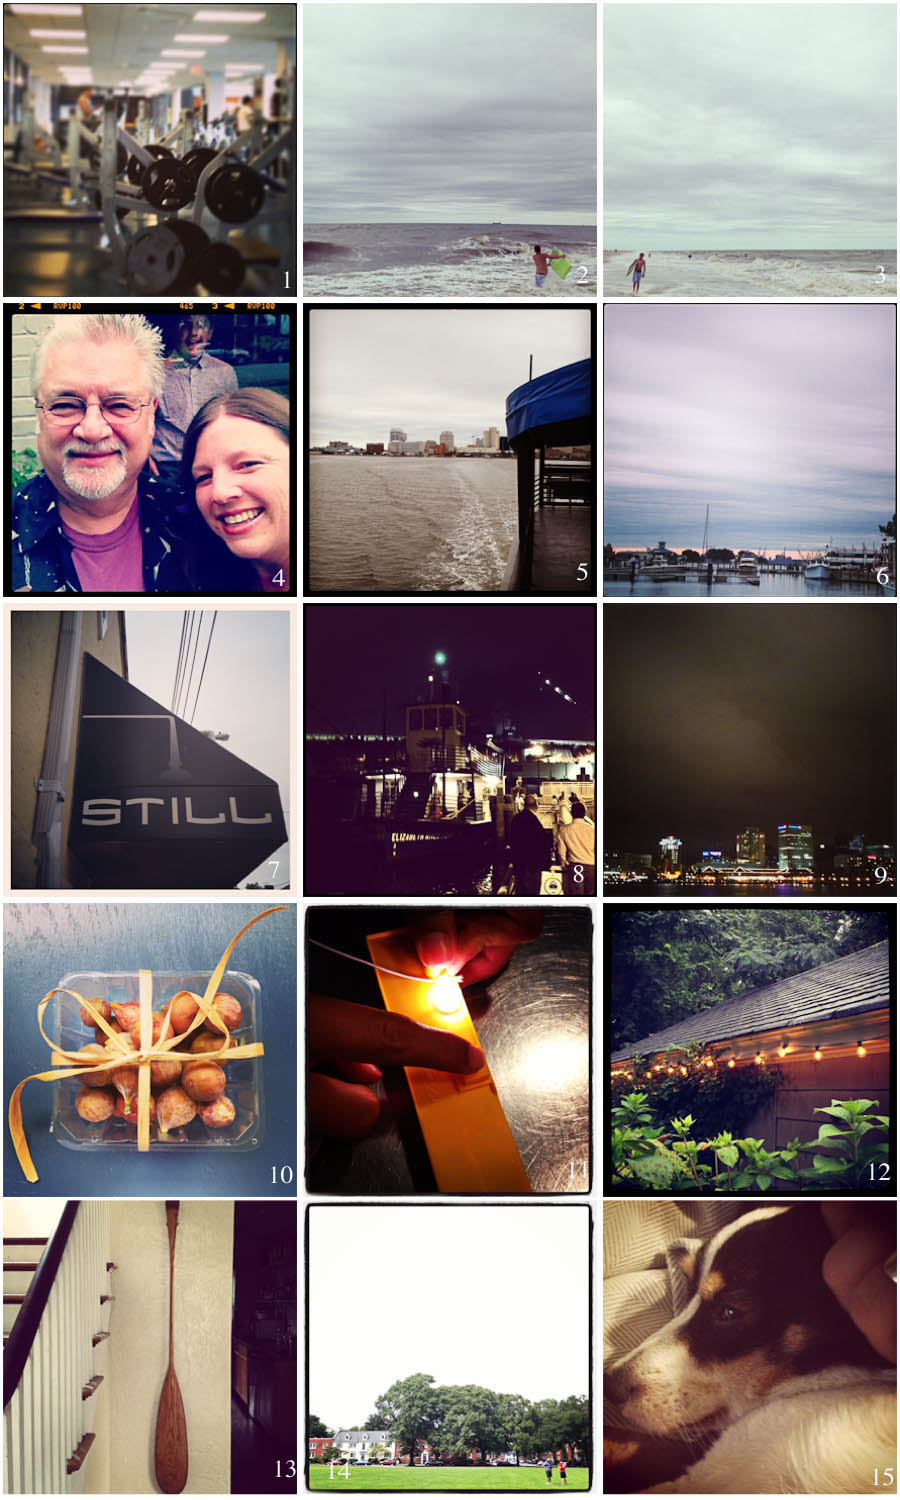 1. let's do this | 2. choppy seas | 3. wear a kid out | 4. photobomb by cal | 5. ferry to portsmouth | 6. norfolk at sunset | 7. still | 8. waiting on the ferry home | 9. norfolk at night  | 10. glorious figs, pretty packaging | 11. rocket man | 12. rainy nighttime garden | 13. neel's paddle | 14. rocket men | 15. sweet snuggly violet